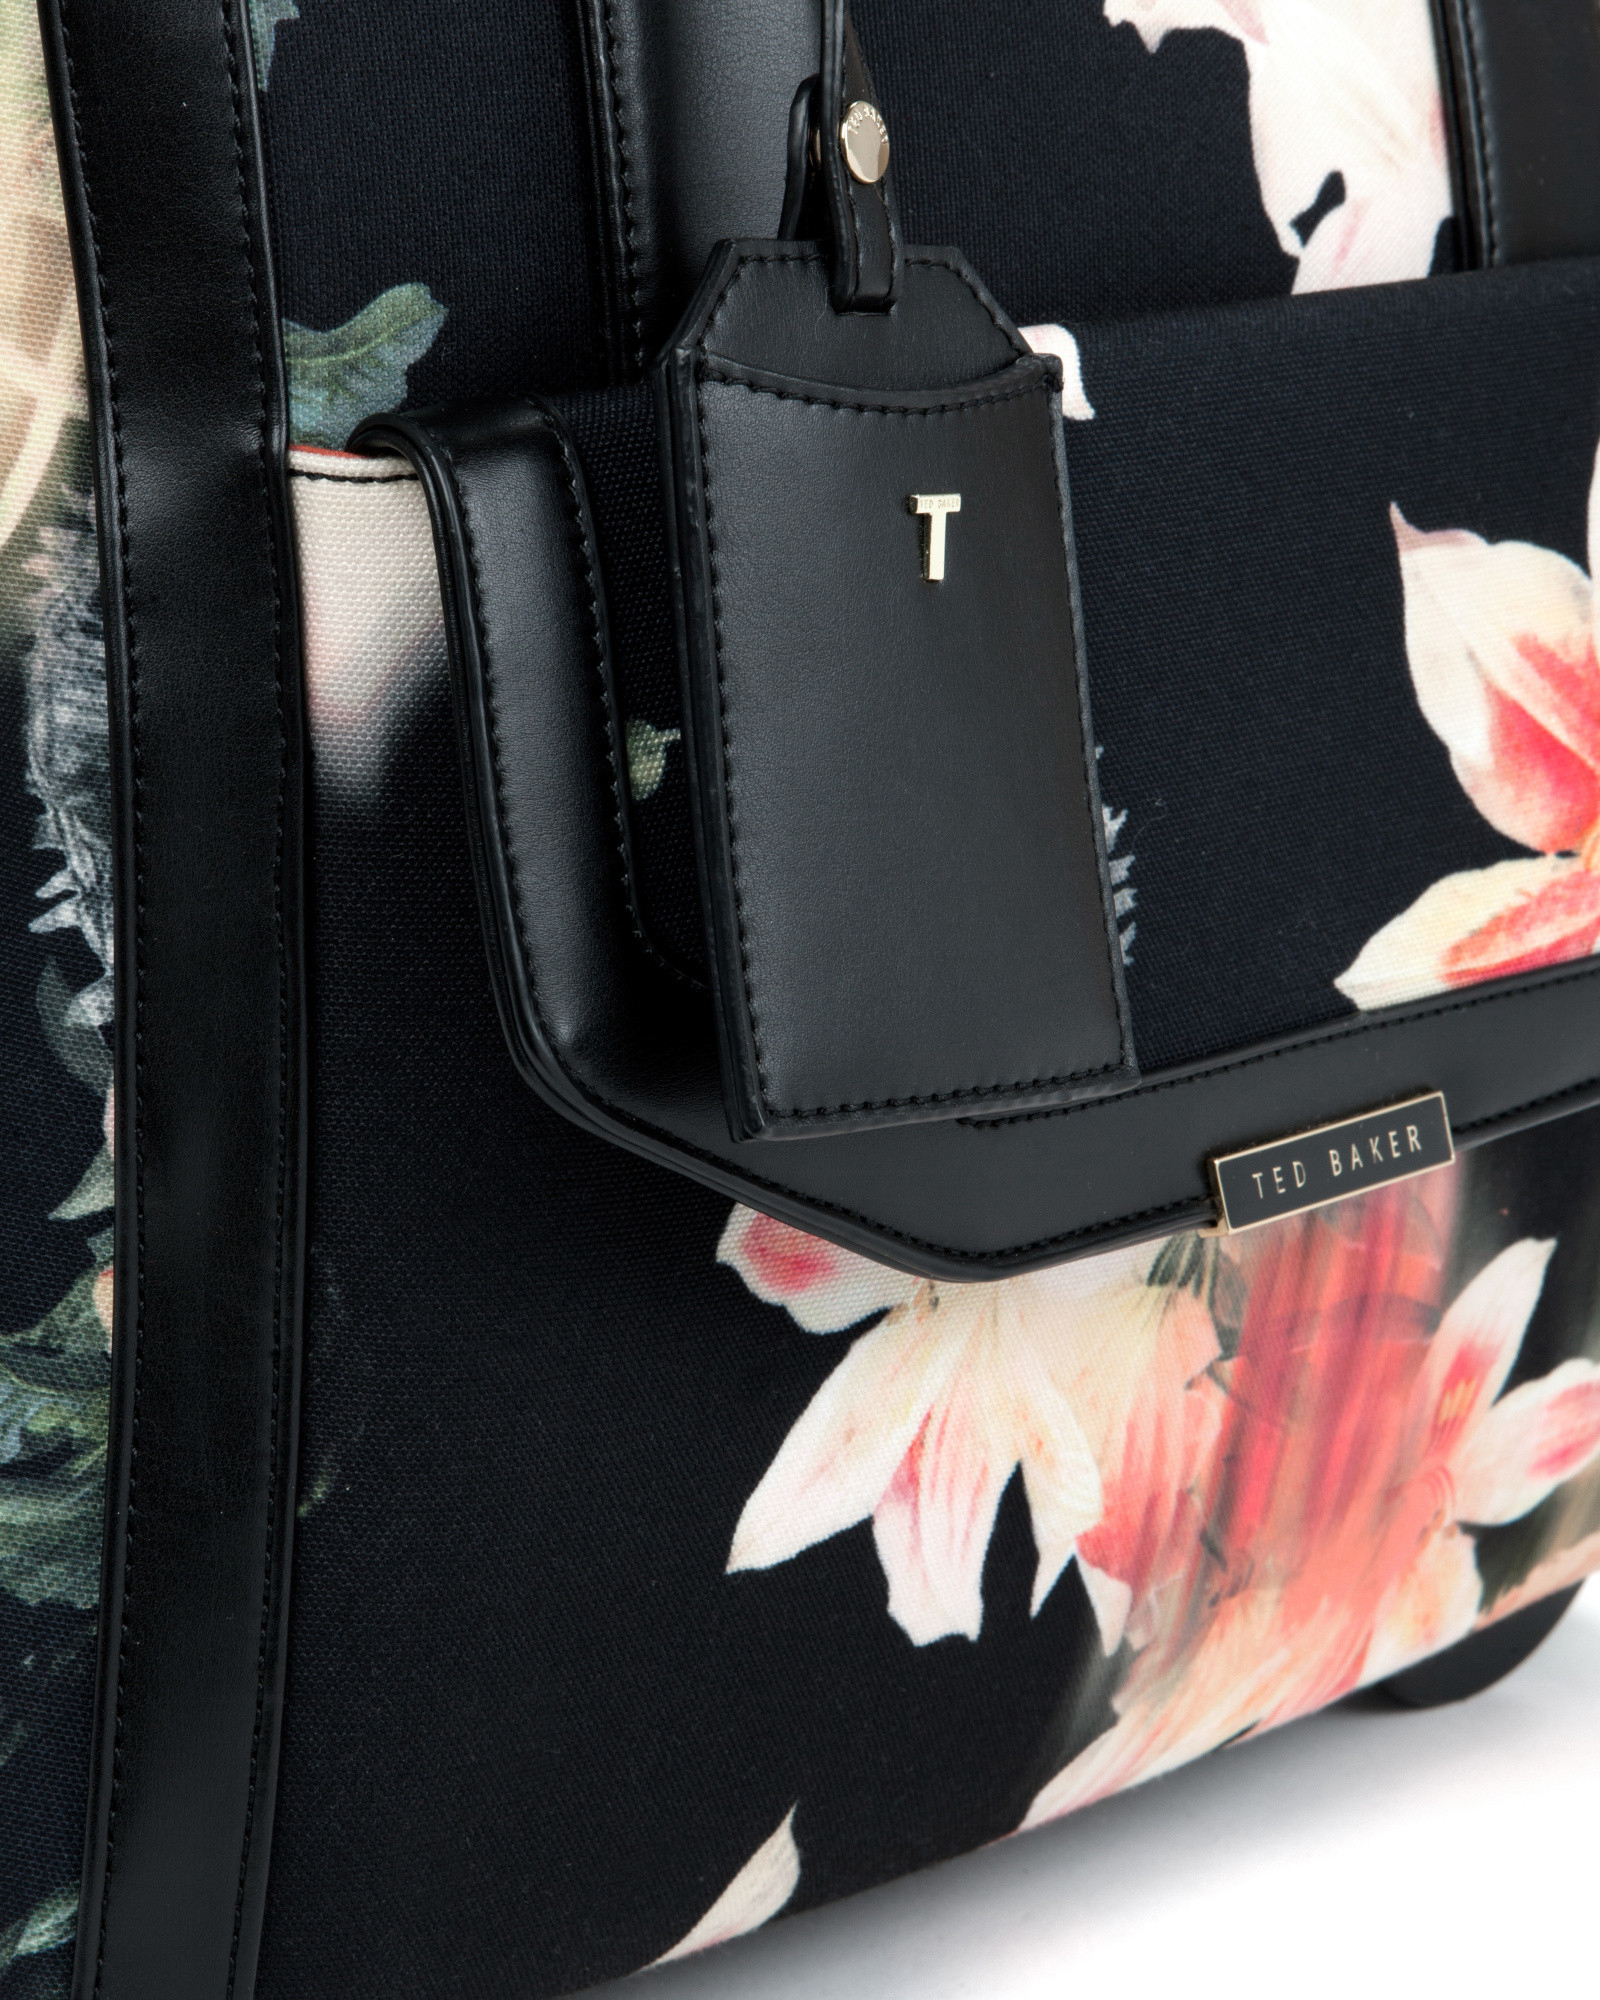 8698c7aba1e46 Ted Baker Opulent Bloom Canvas Luggage Case in Black - Lyst